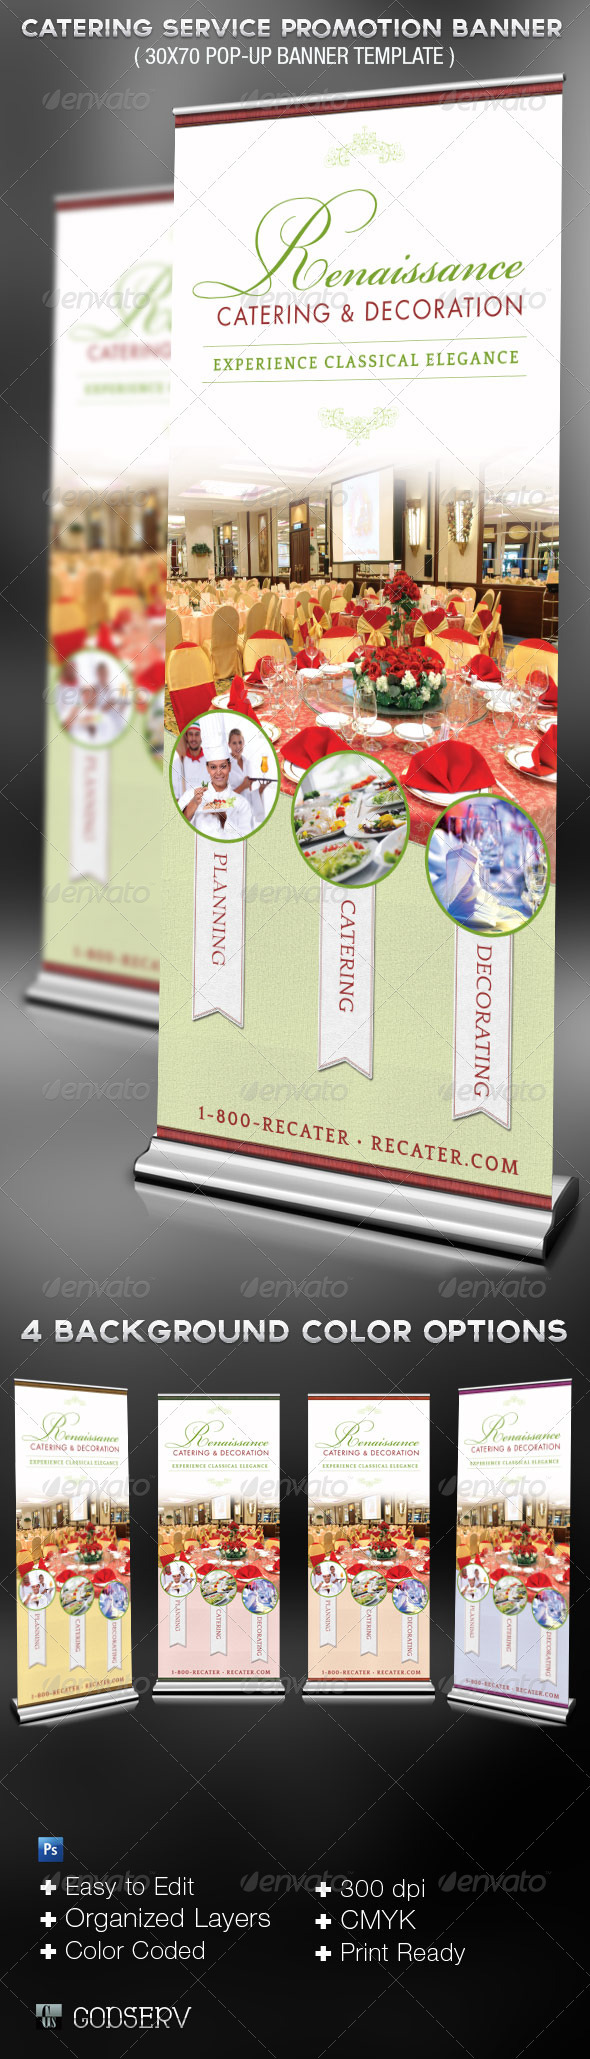 Catering Service Promotional Banner Template - Signage Print Templates